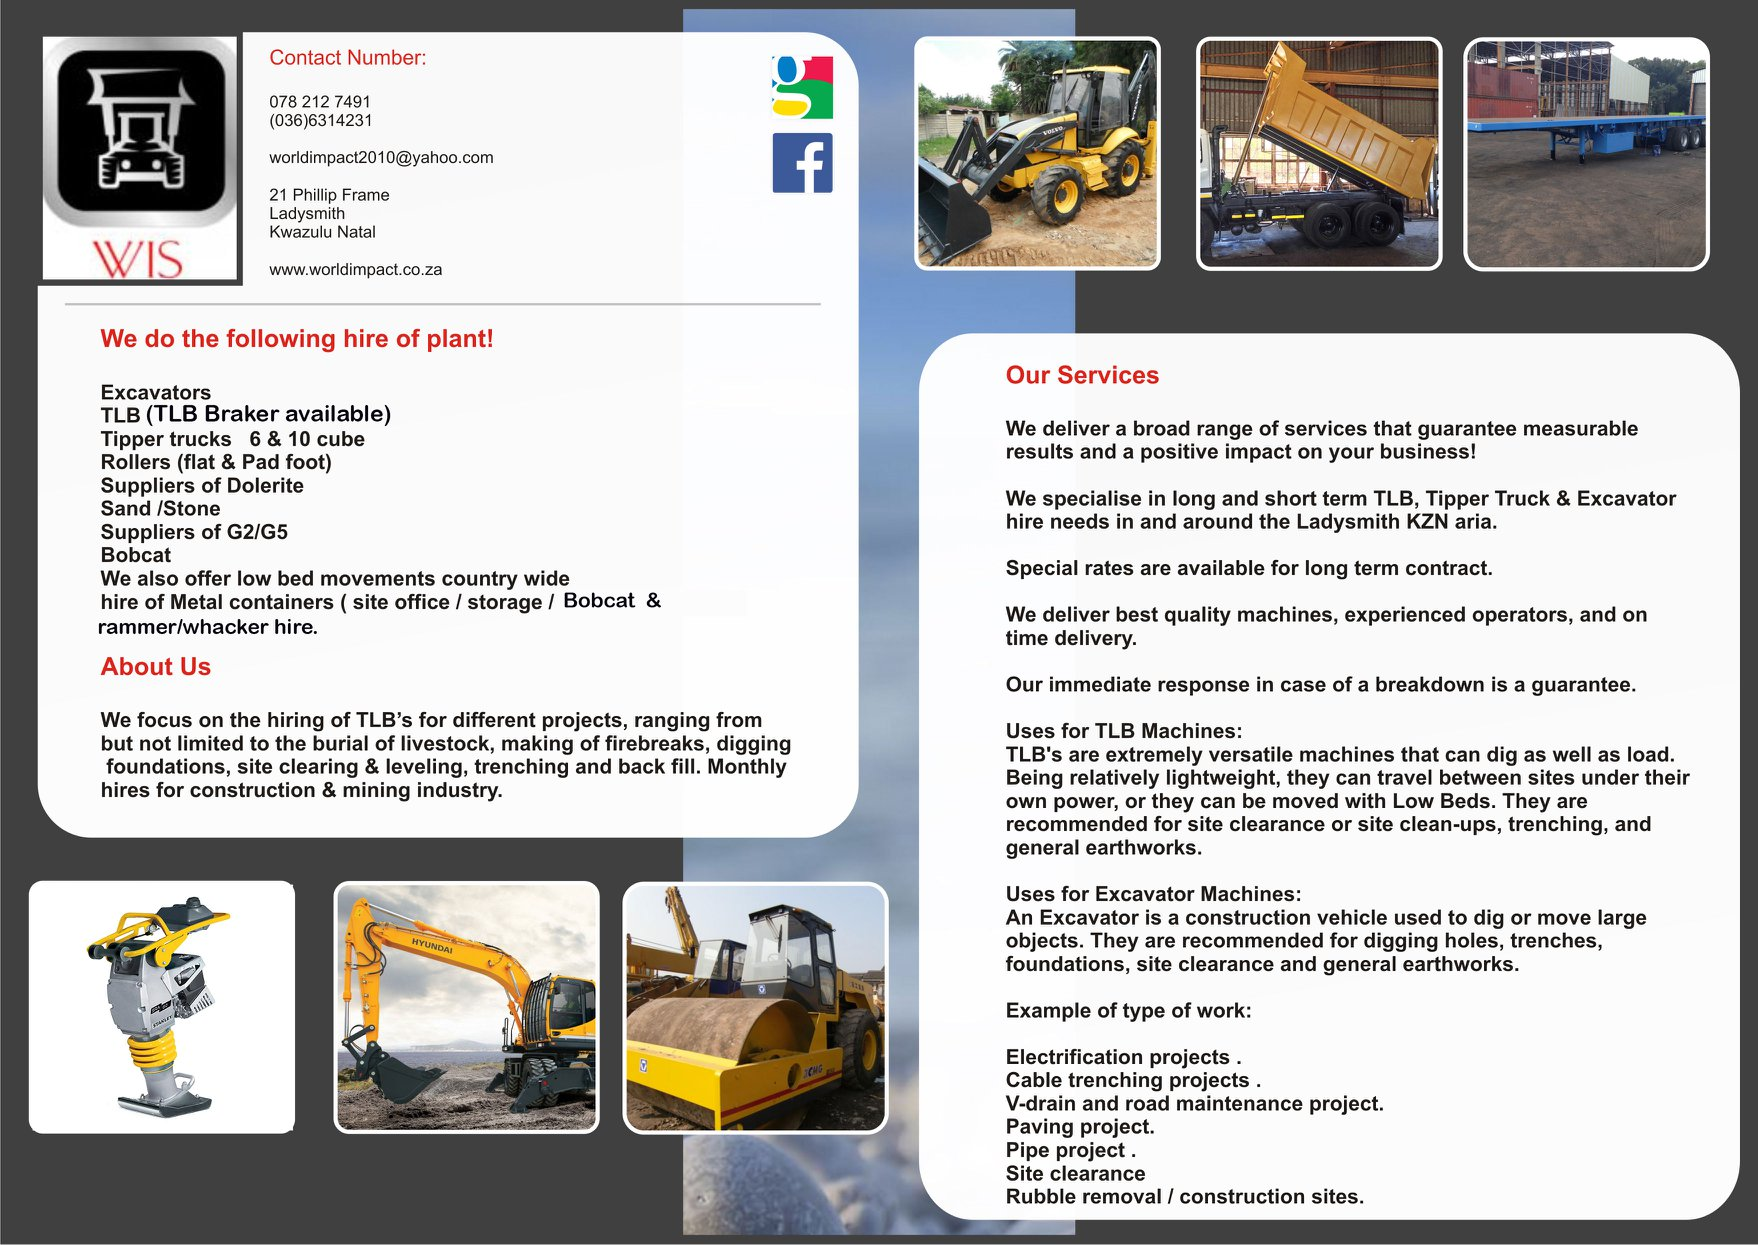 World Impact Suppliers – Suppliers of  TLB Hire, Tipper Truck hire & Excavator hire Ladysmith Kwazulu-natal